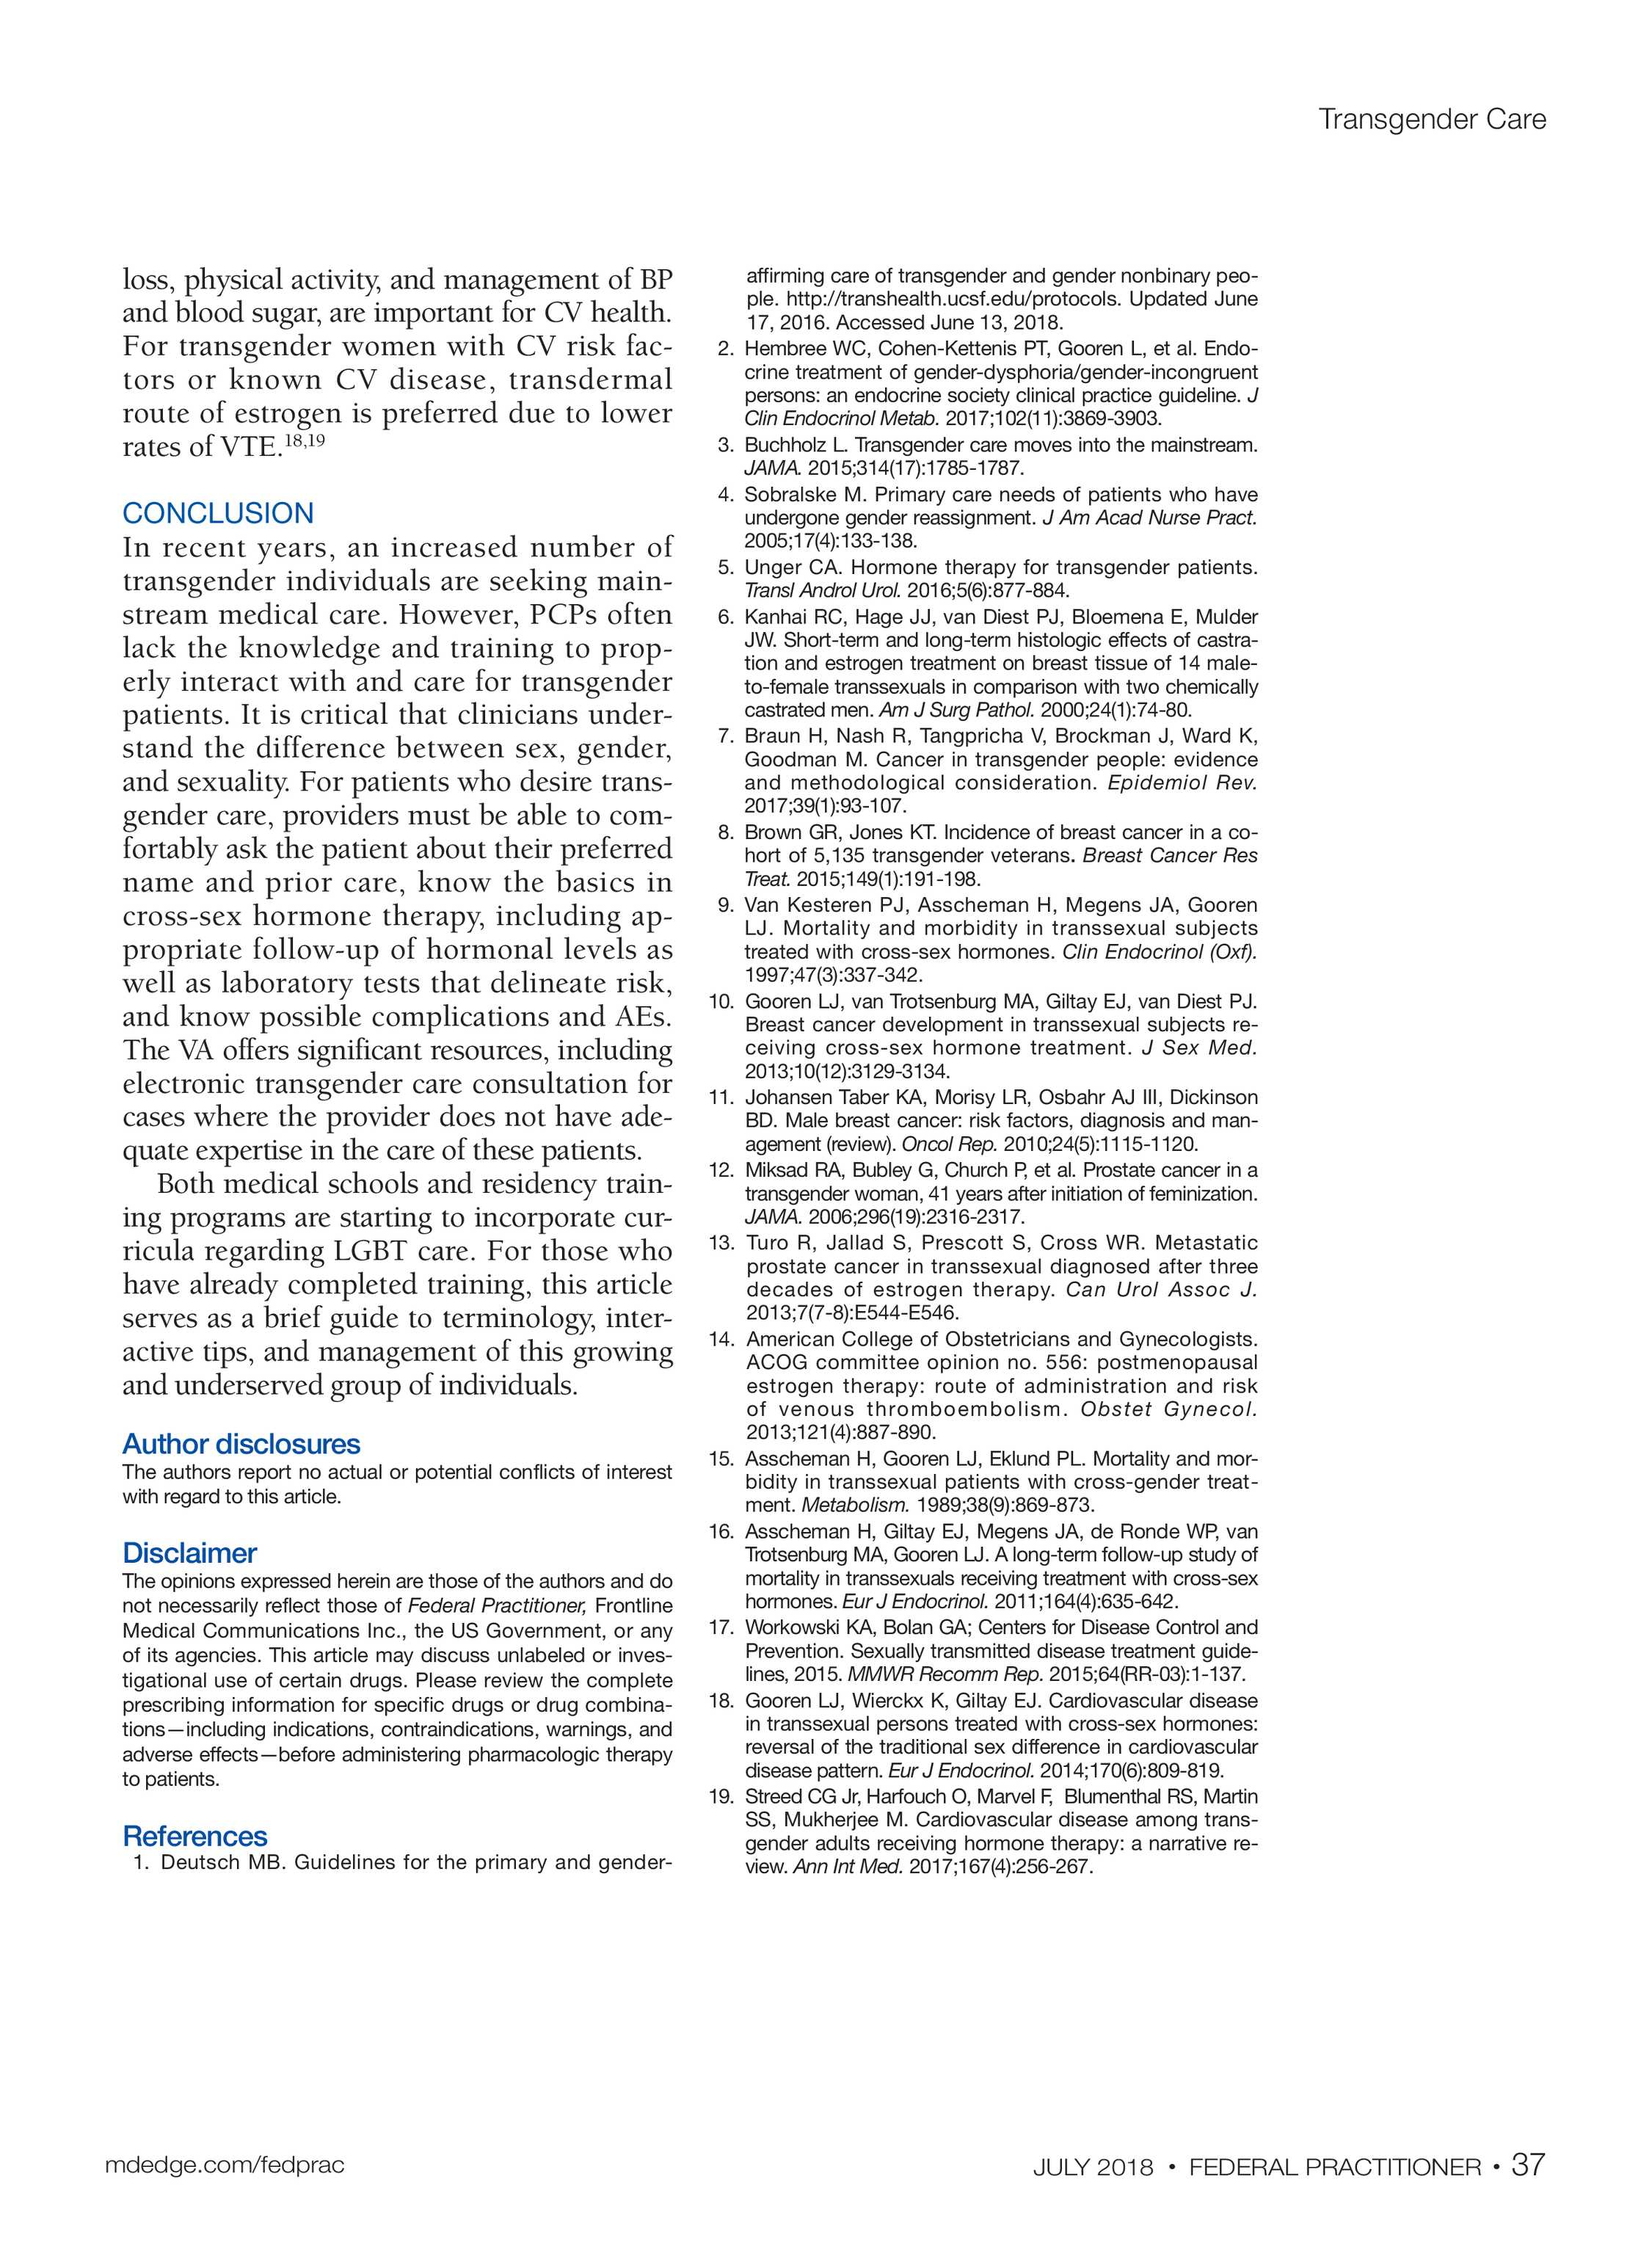 Federal Practitioner - July 2018 - page 38